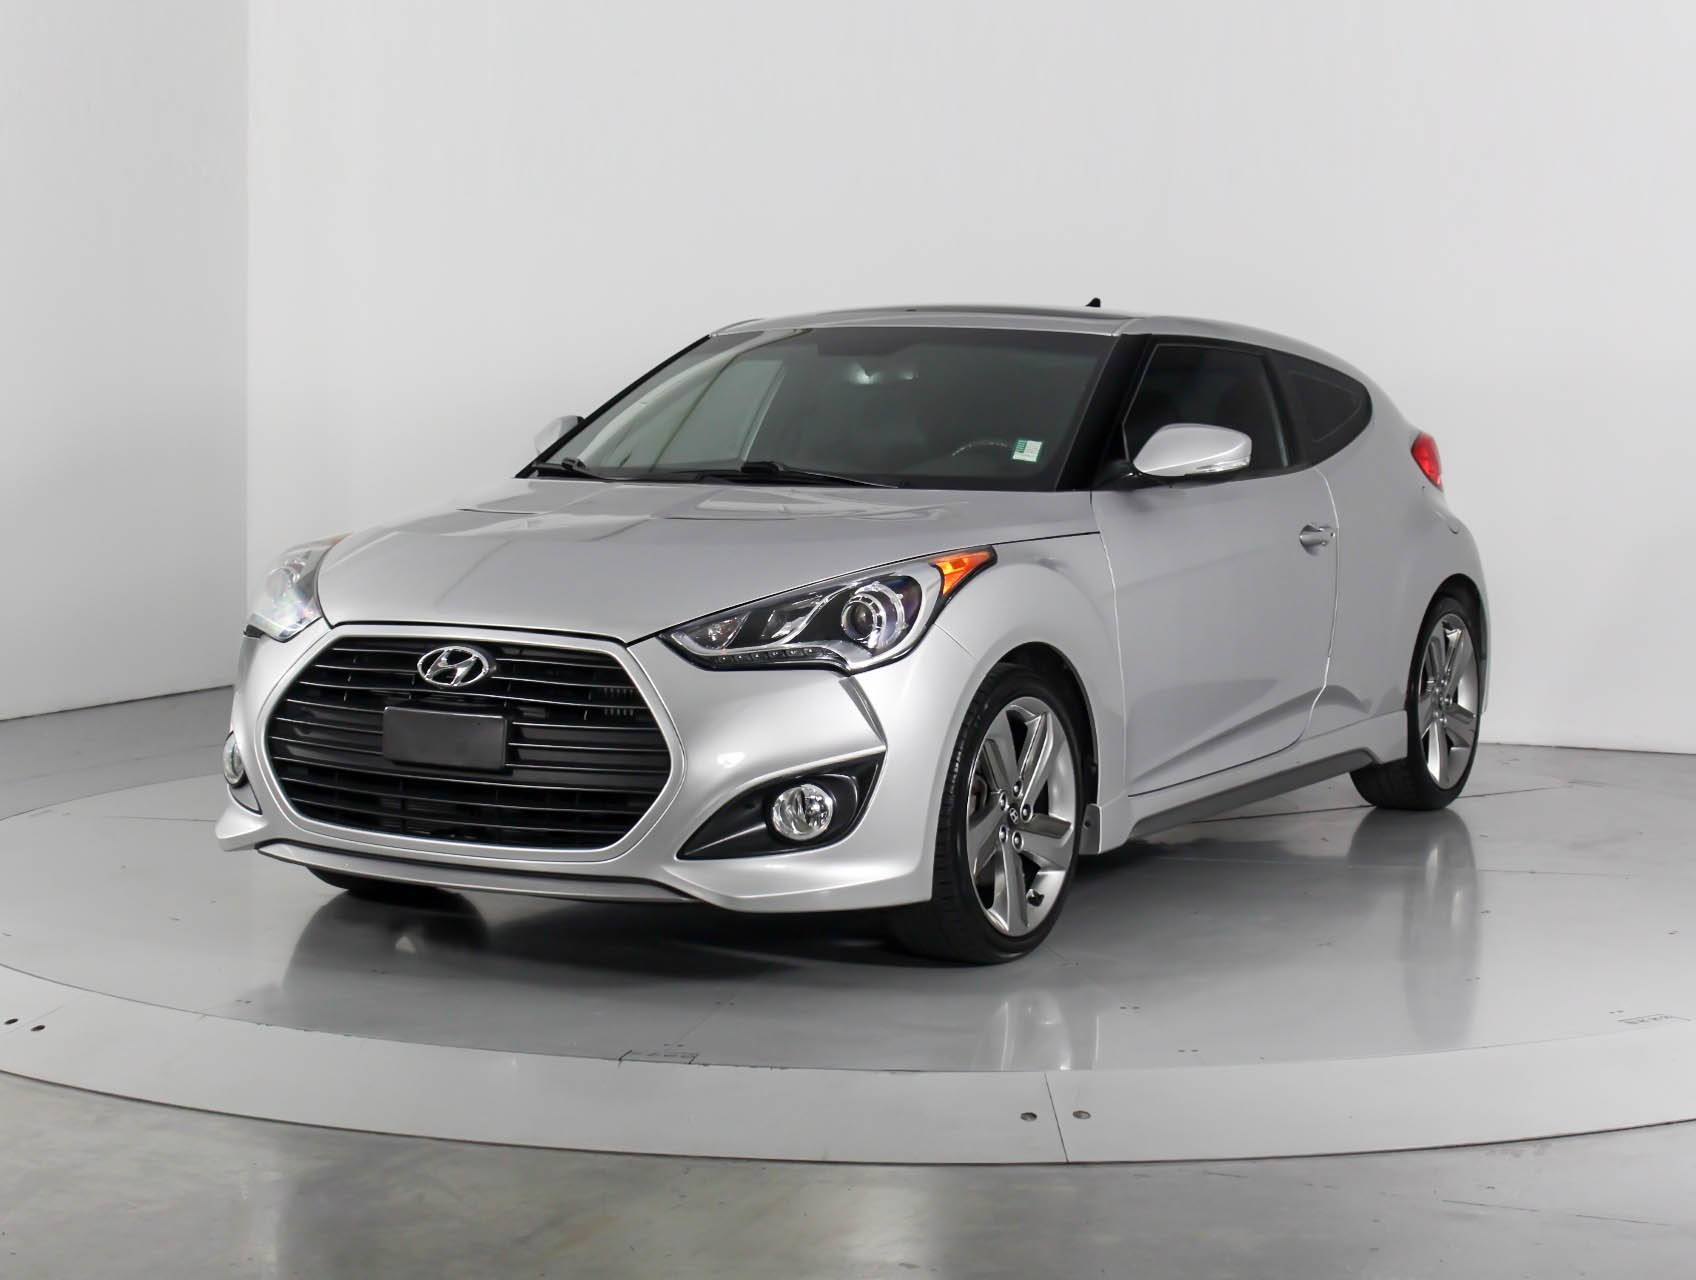 Used 2013 Hyundai Veloster Turbo Coupe For Sale In West Palm